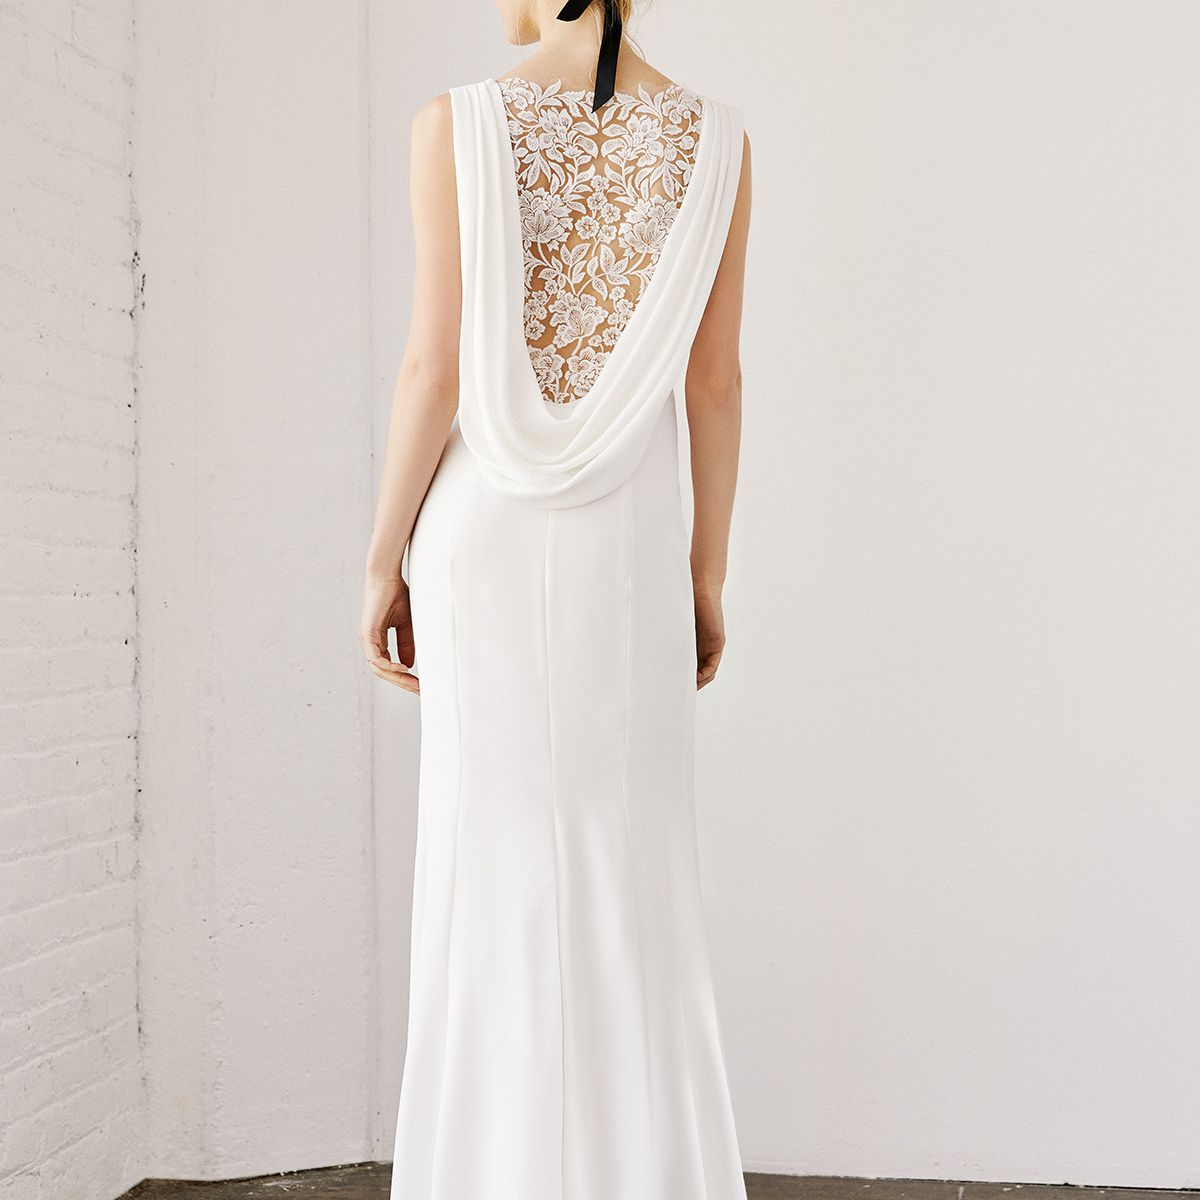 The 29 Best Simple Wedding Dresses Of 2020,Semi Formal High Low Dresses Wedding Guest